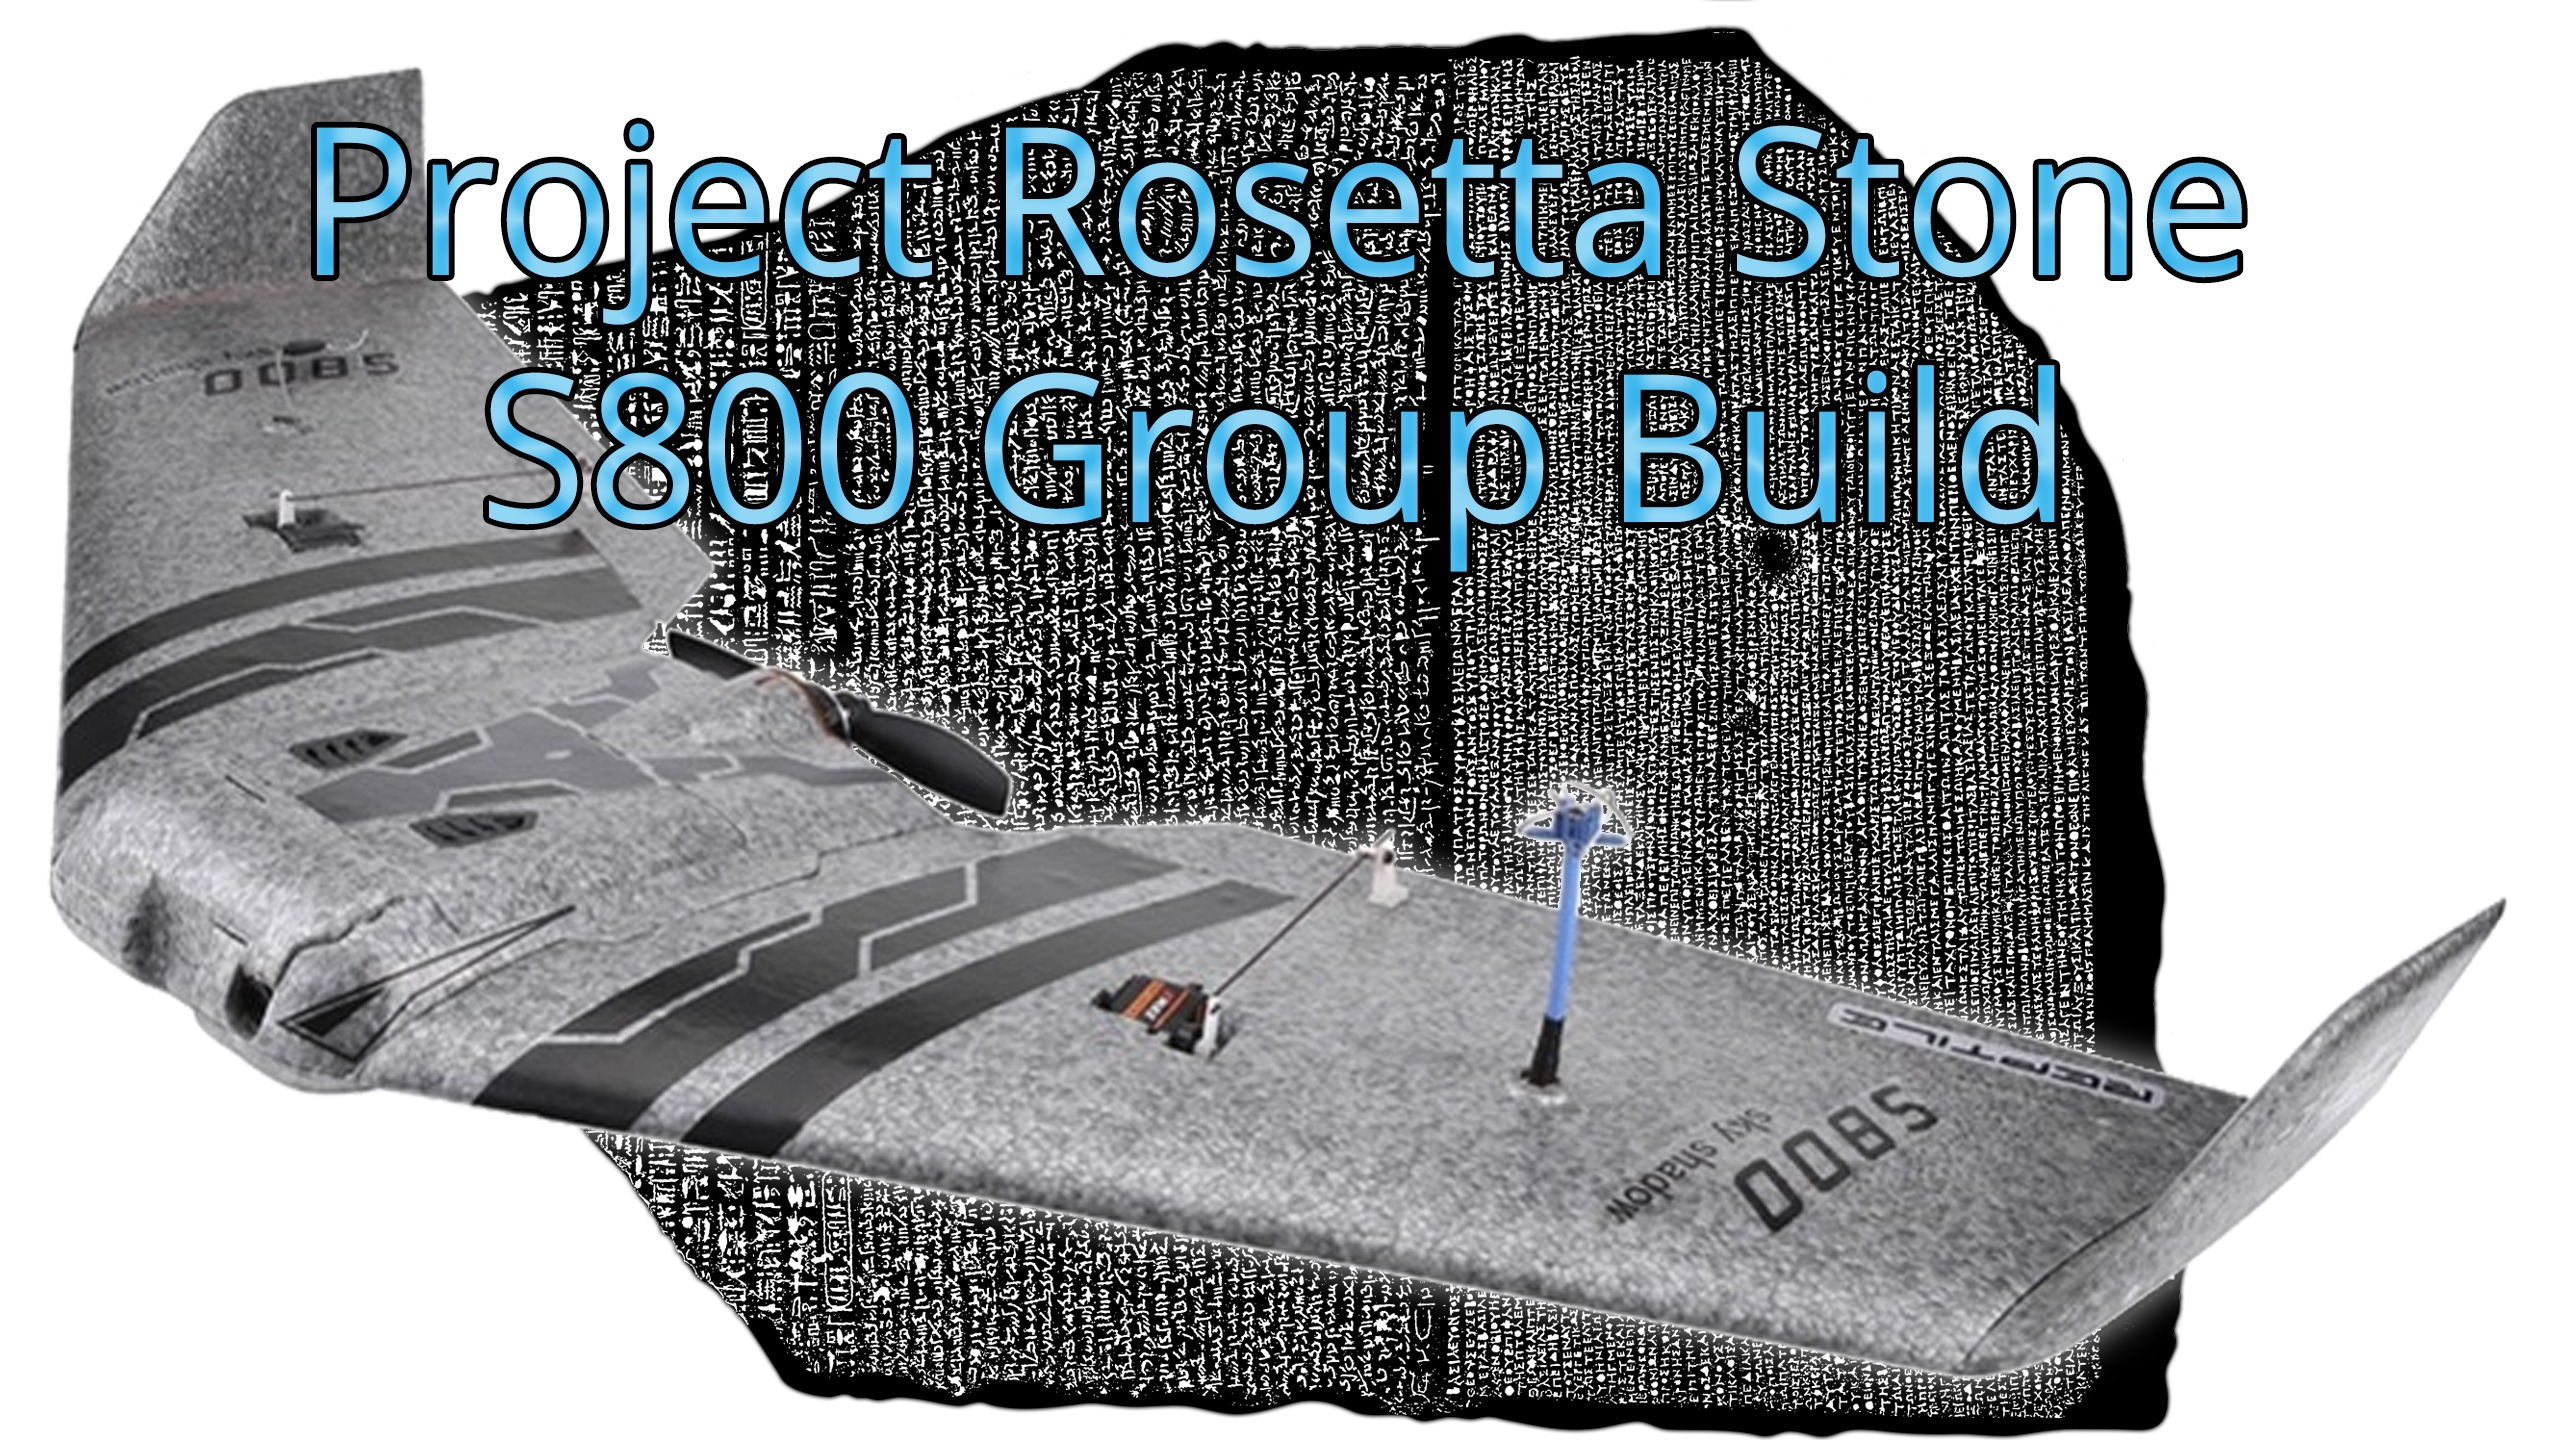 INAV Fixed Wing Group - Project Rosetta Stone - S800 Group Build